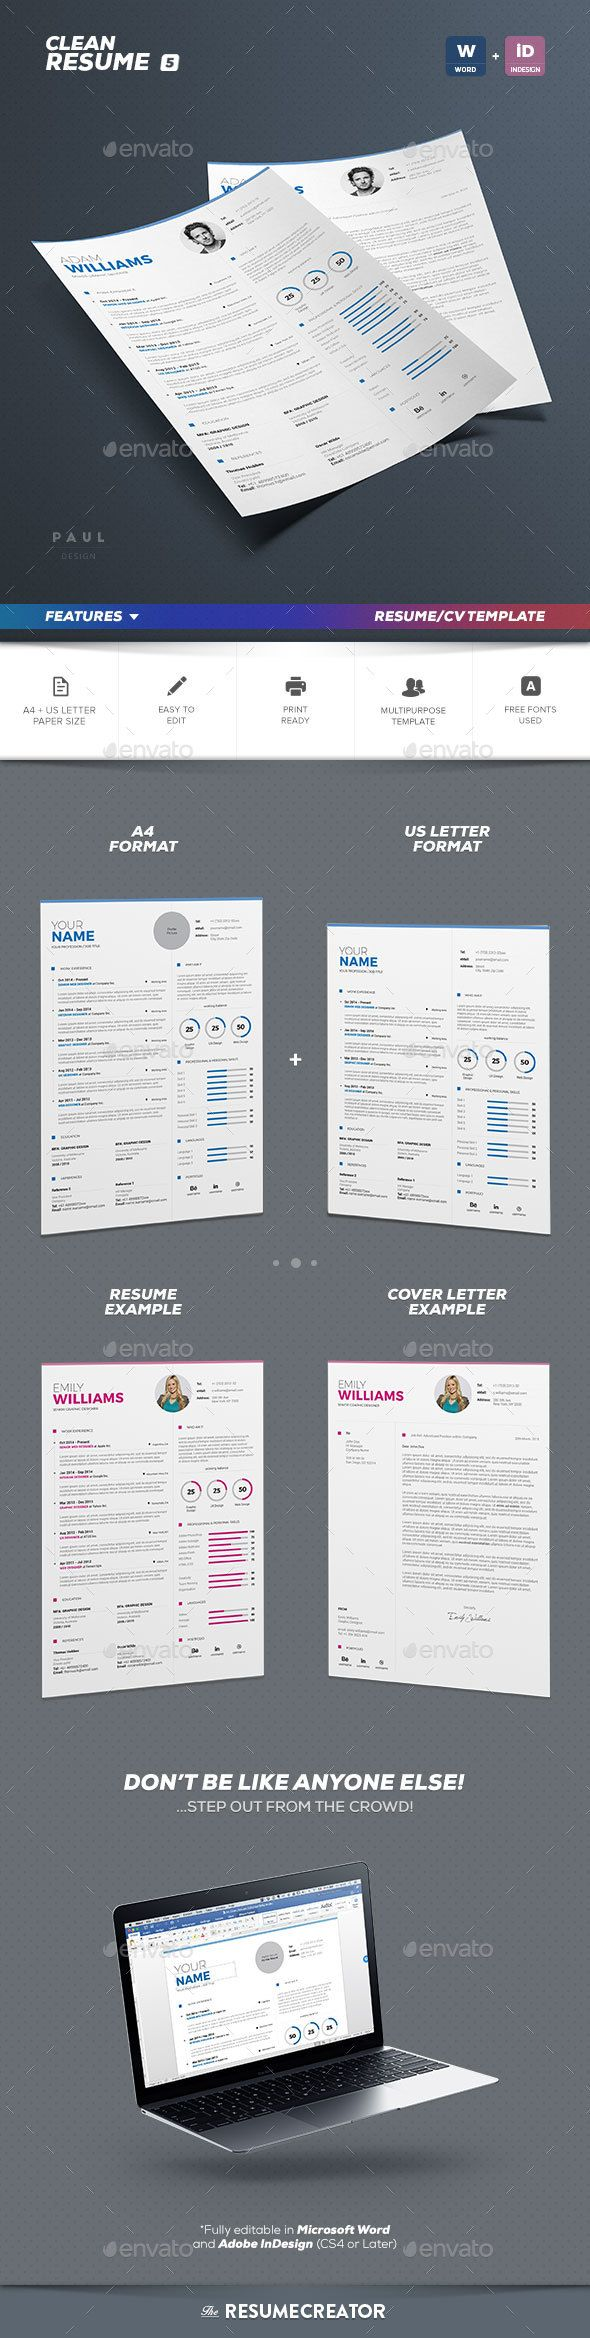 15+ Infographic Resume Ideas for Non-Creative Jobs | Free ... |Cool Infographic Resume Template